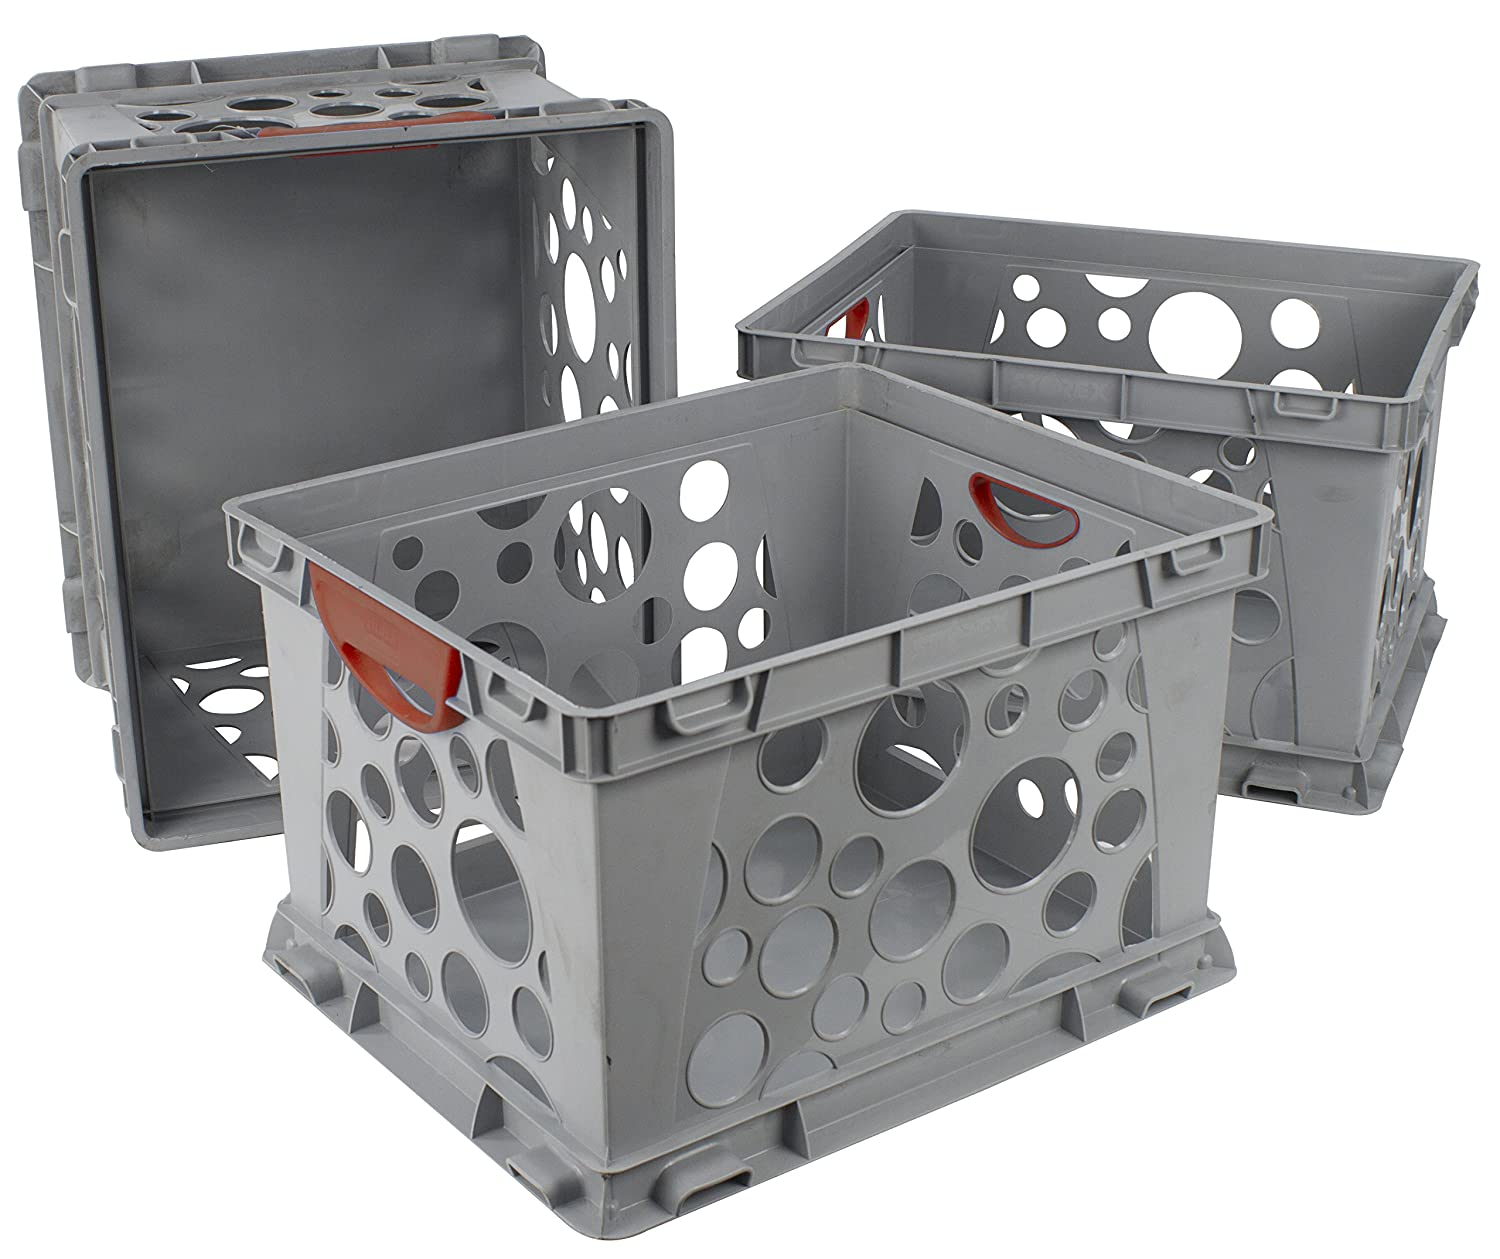 Case of 3 Storex Recycled Filing Crate with Comfort Handles Red 17.25 x 14.25 x 10.5 Inches STX61790U03C